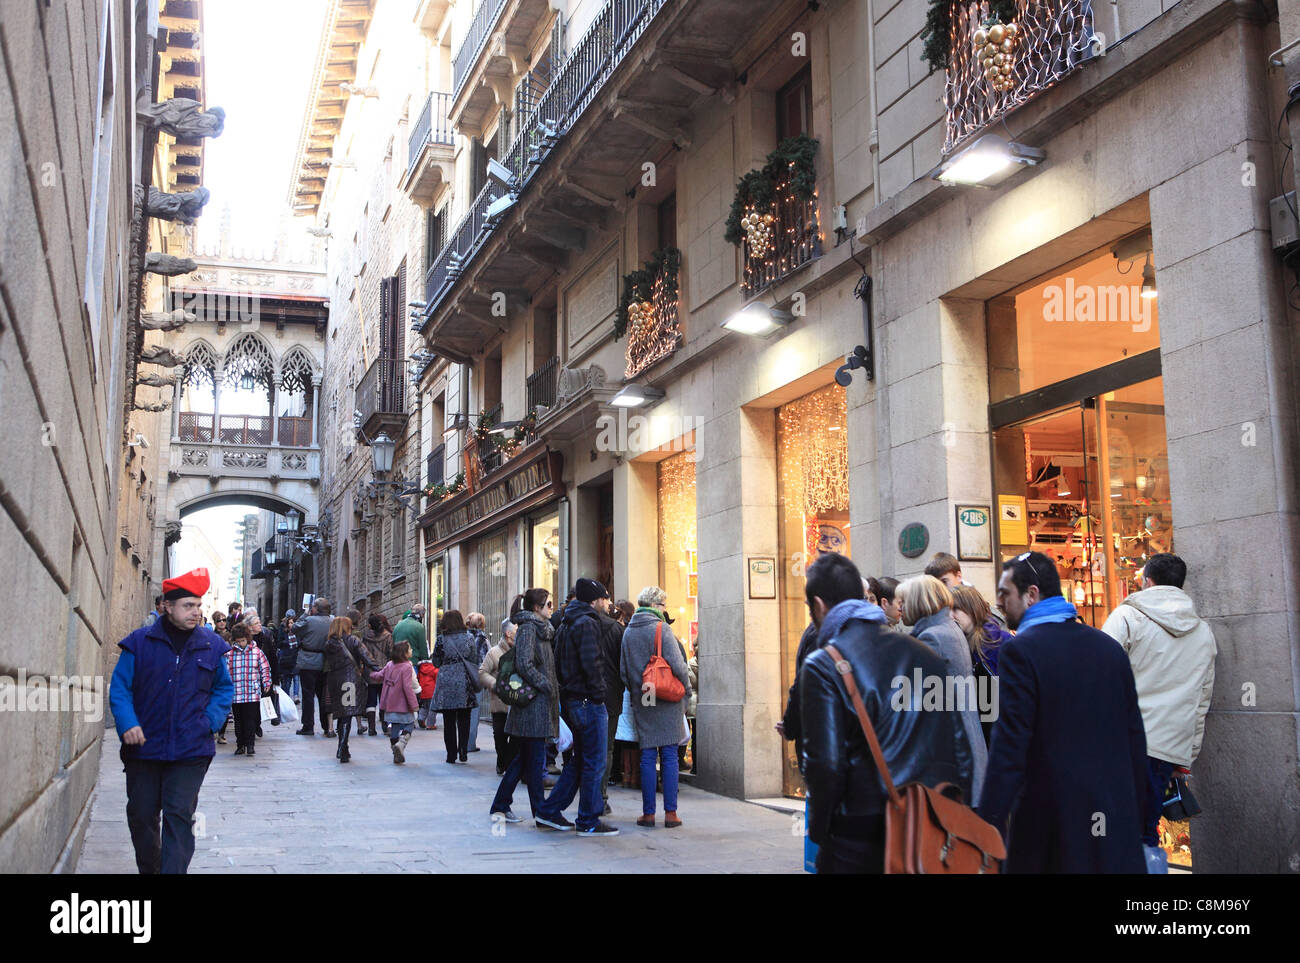 Christmas shopping on Carrer del Bisbe in the Gothic Quarter in Barcelona, Spain - Stock Image